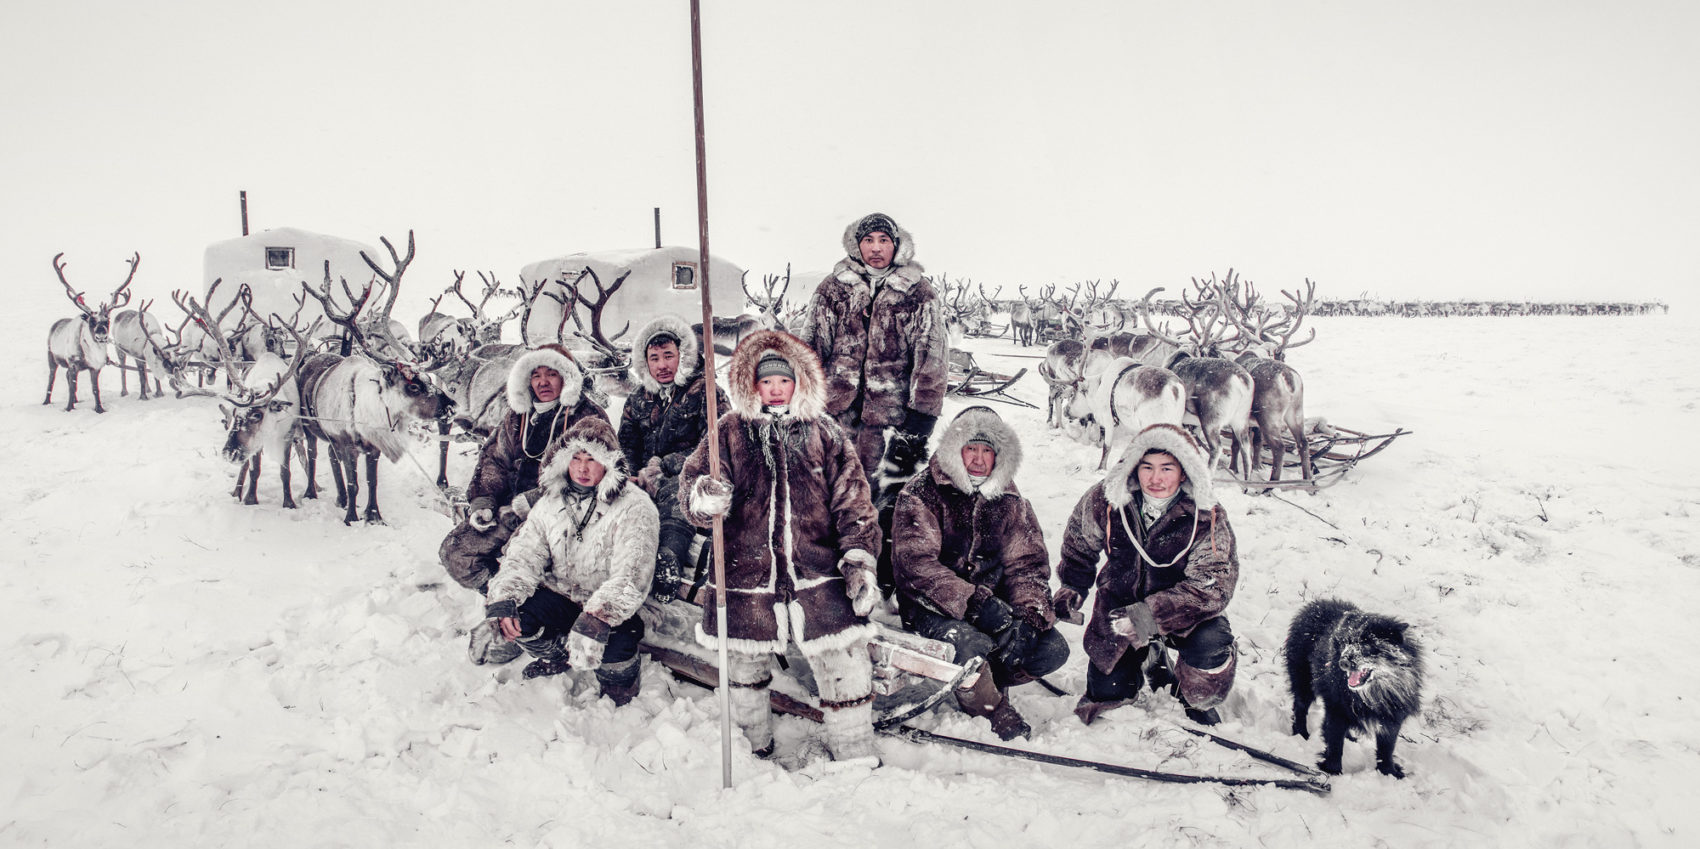 Brigade Migrating with the Baloks, Dolgans | Anabar district, Yakutia | Siberia 2018 (© Jimmy Nelson Pictures BV)